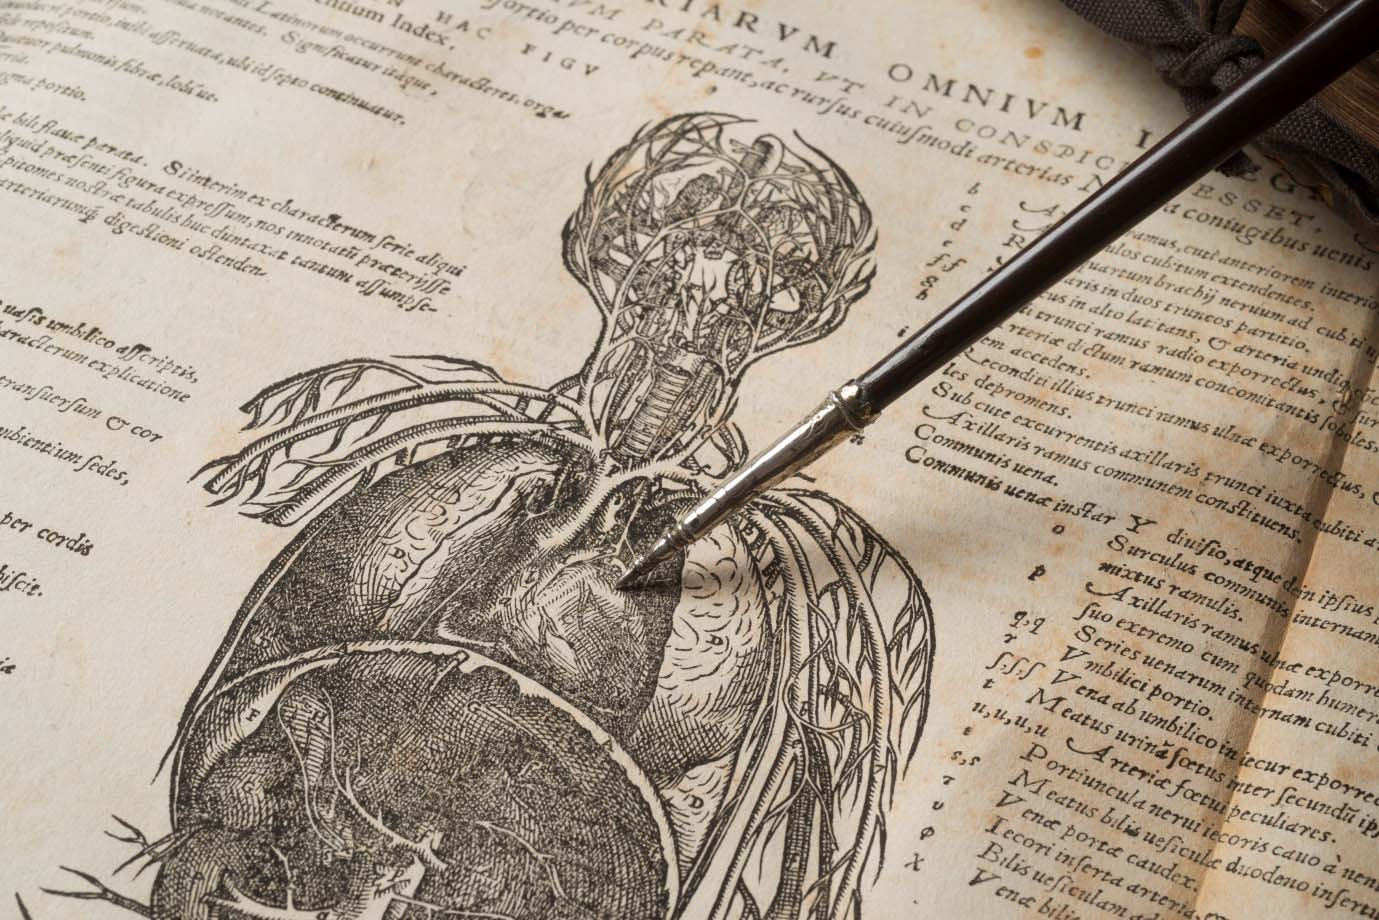 a photo of an open book Andreas Vesalius's De humani corporis fabrica with a pointer resting on an anatomy illustration